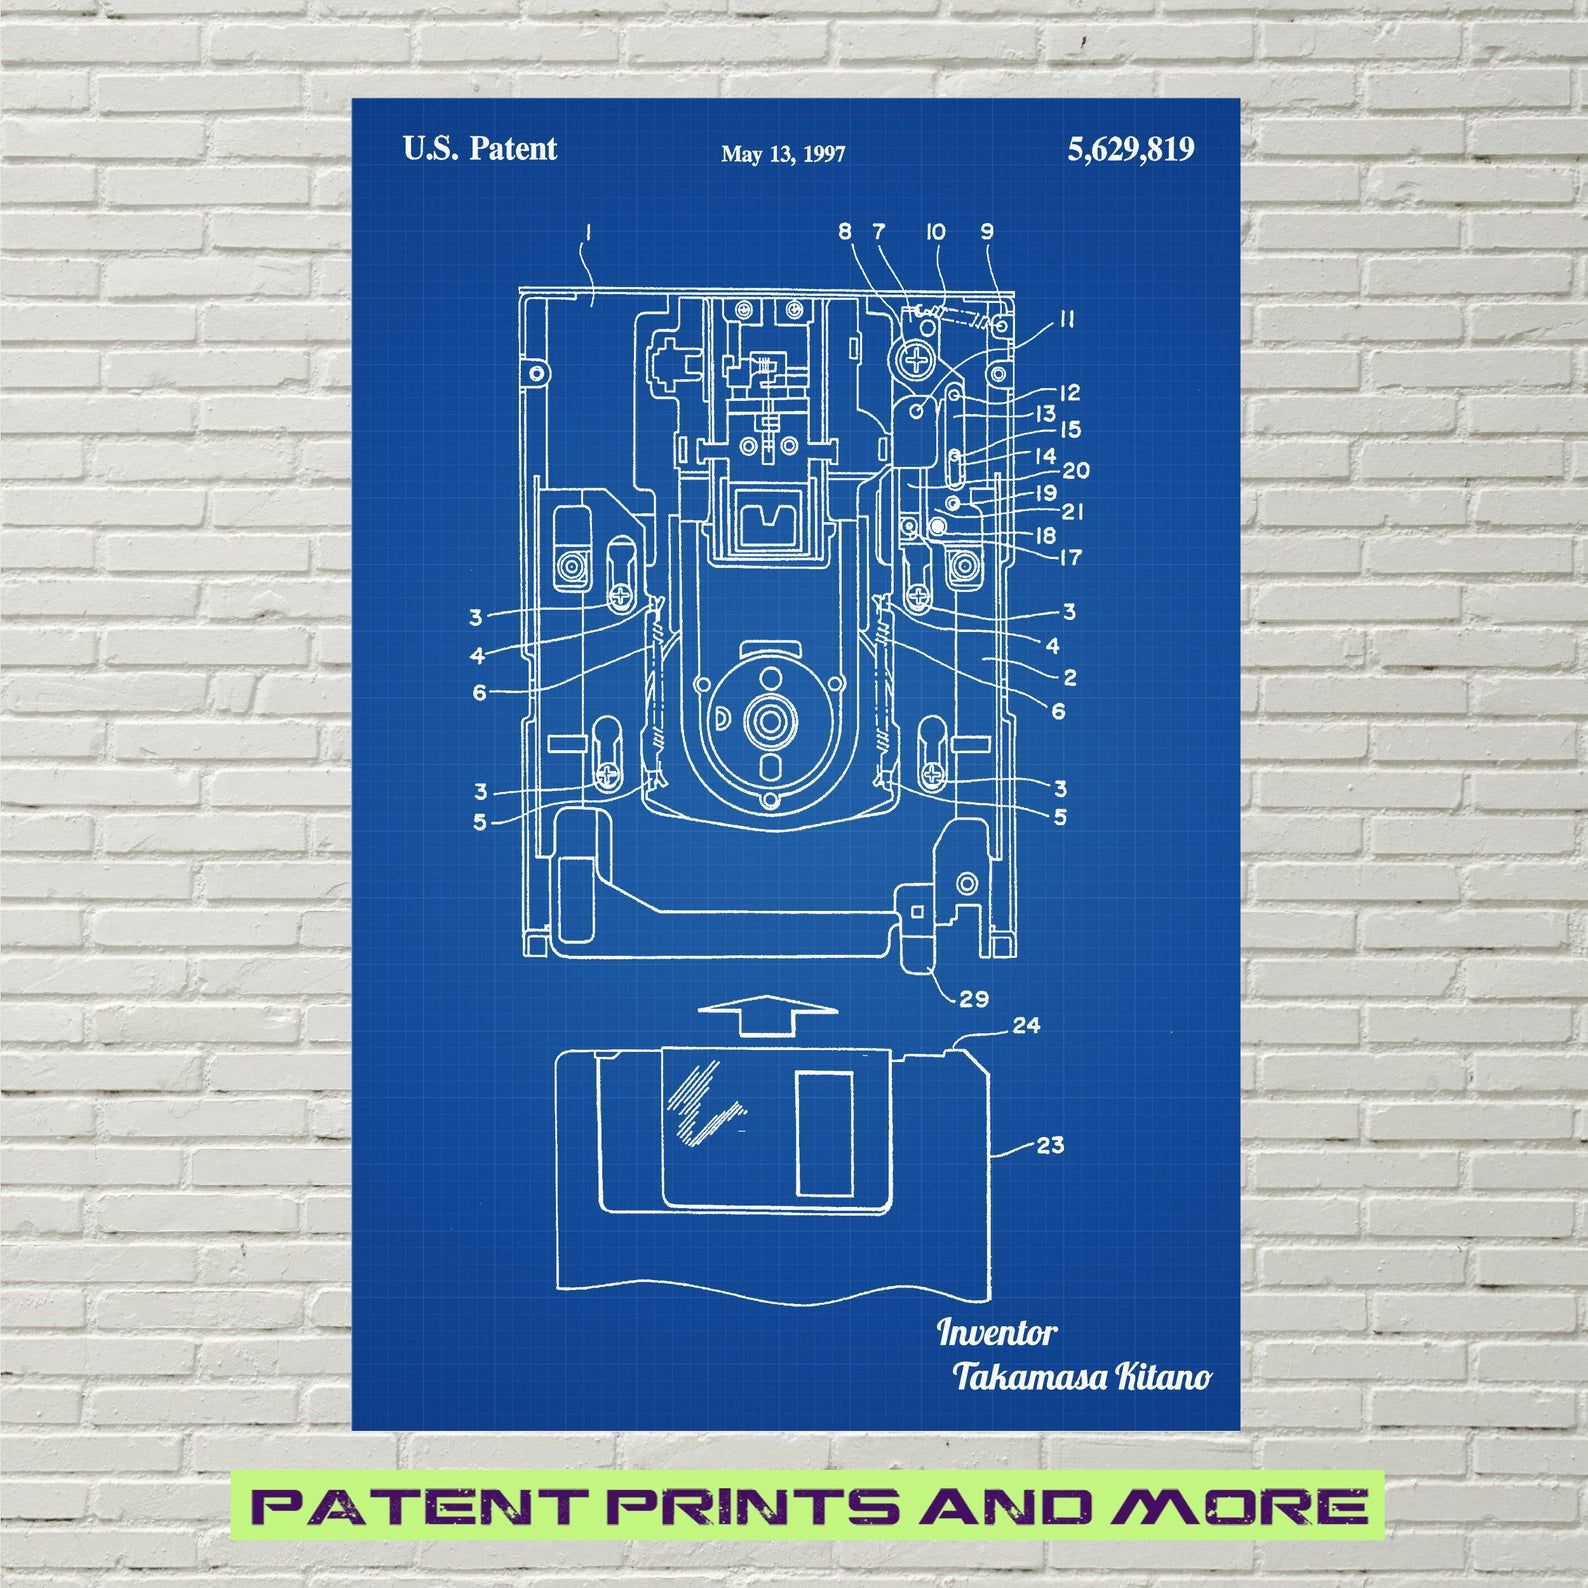 Floppy Disk Drive Patent Print Floppy Disk Poster Programmer Etsy In 2020 Patent Prints Patent Drawing Prints